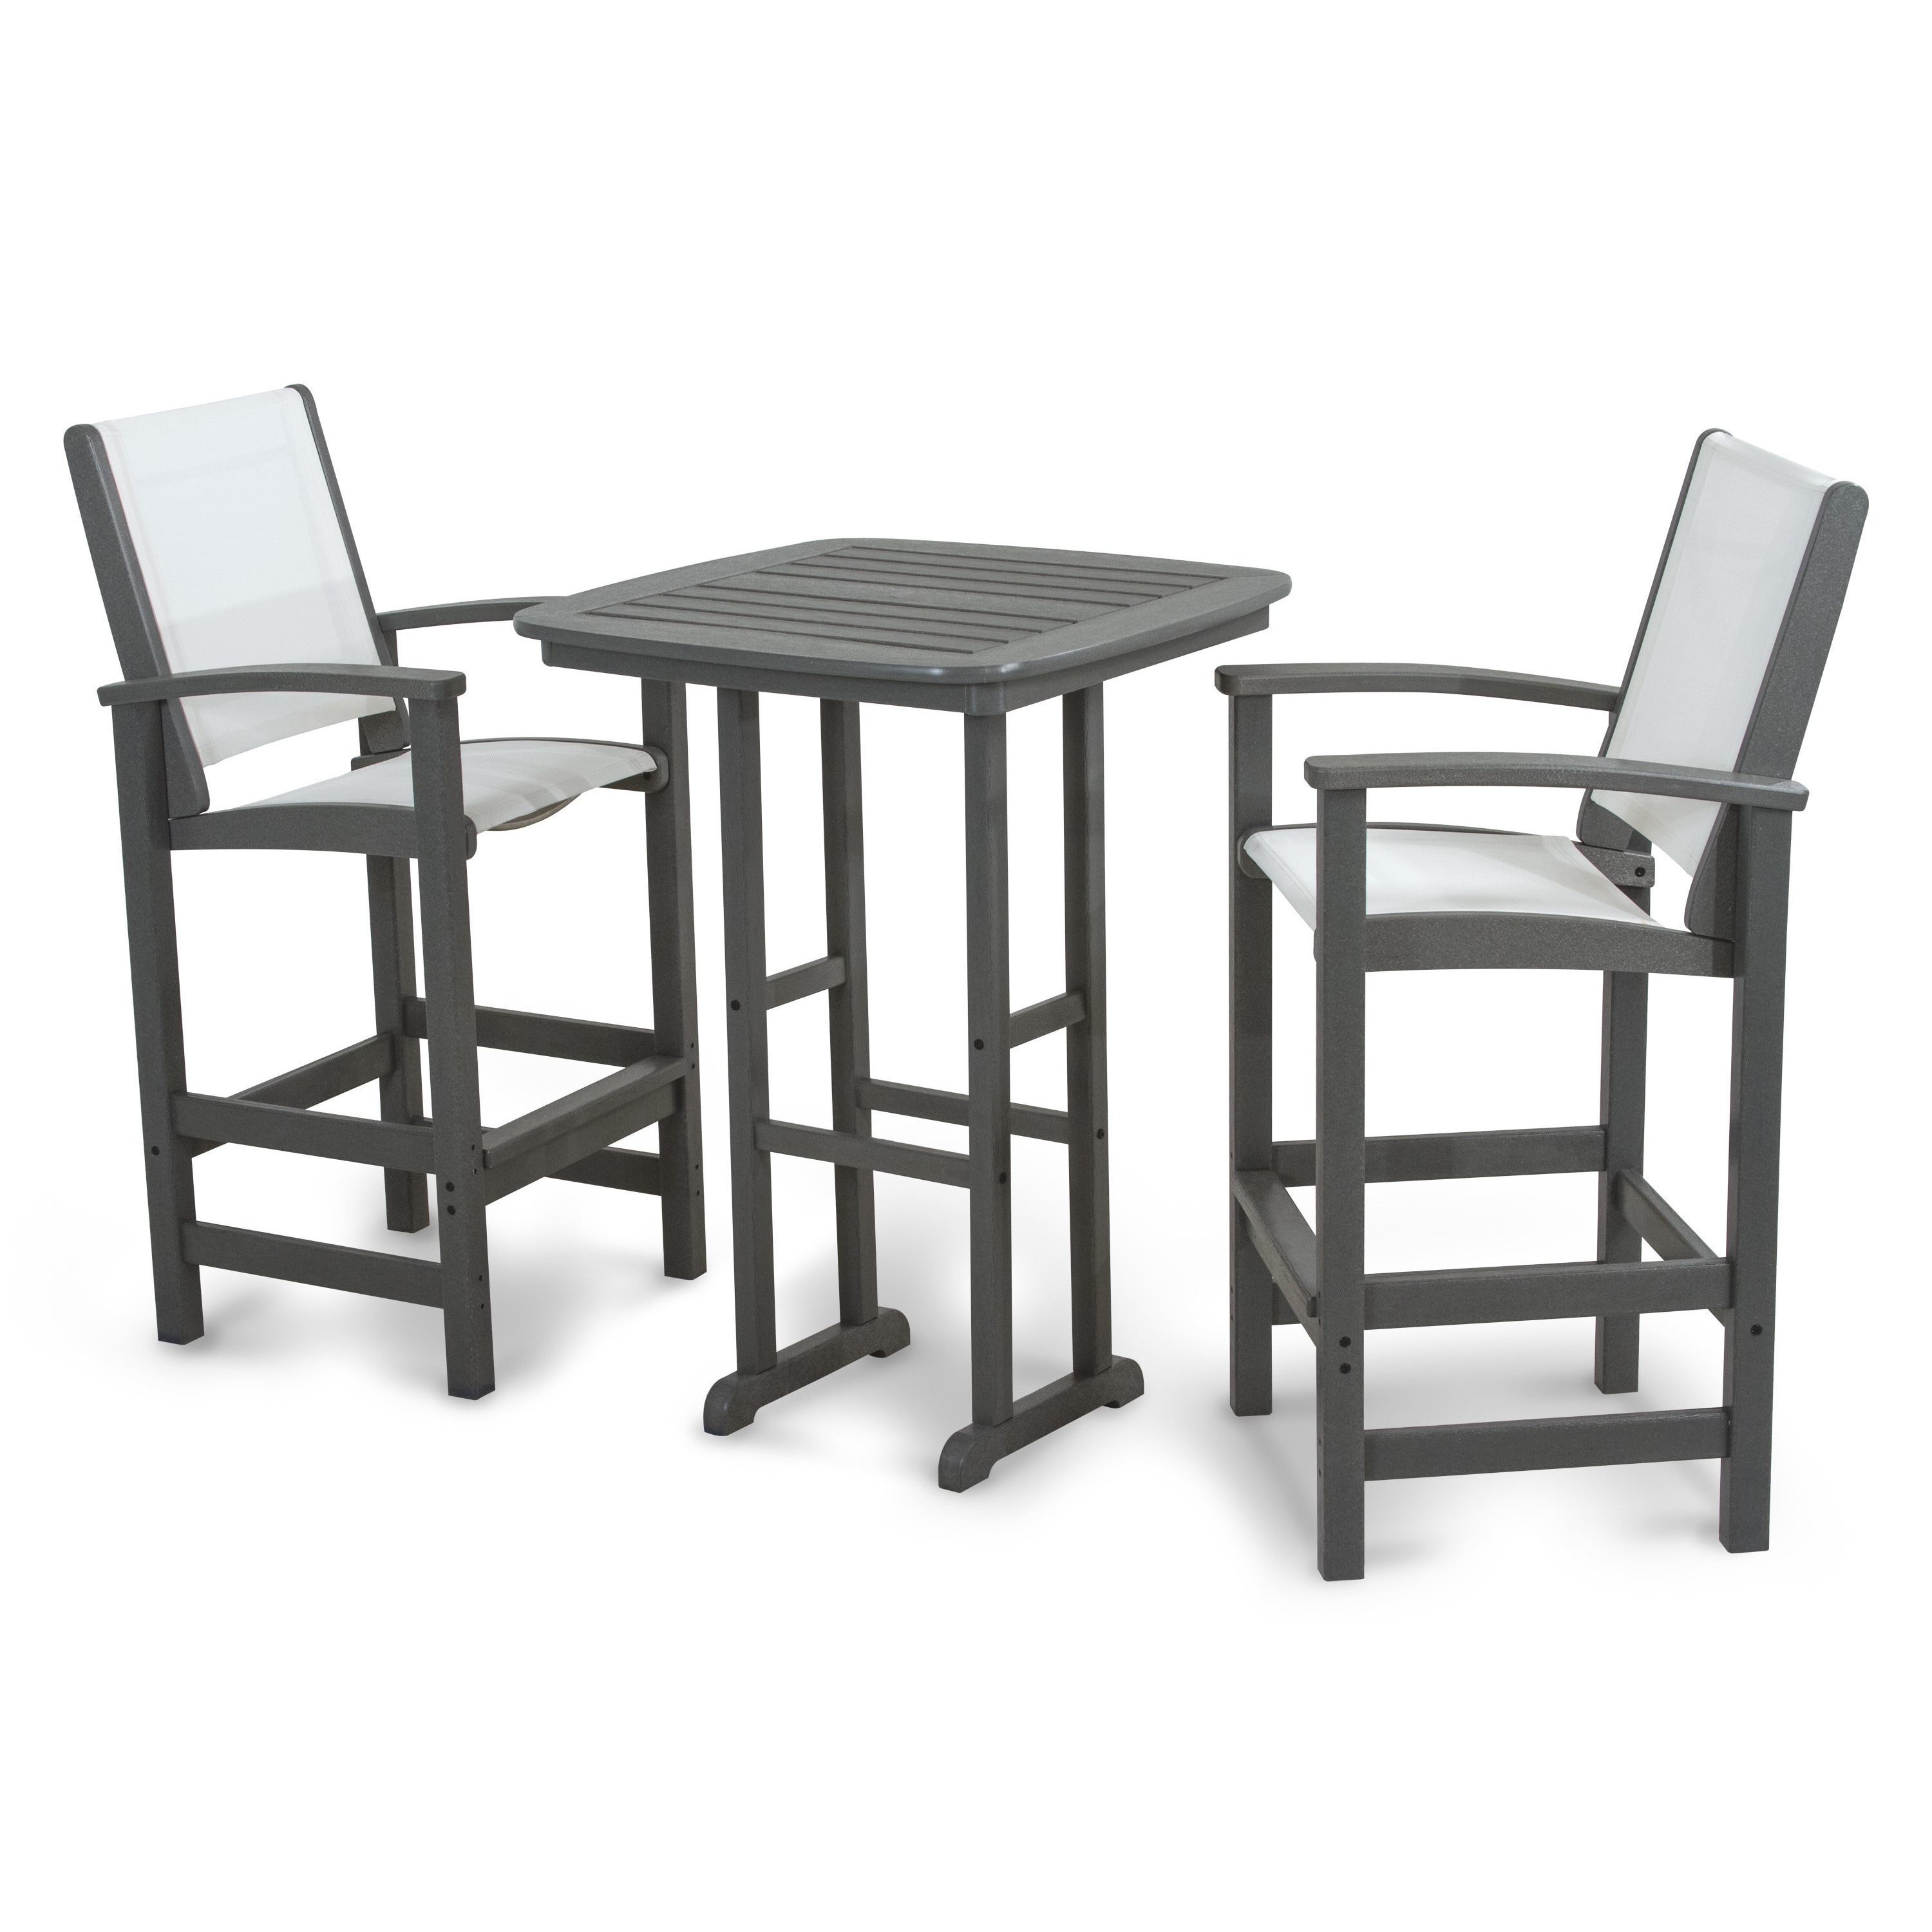 Picture of: Polywood Coastal 3 Piece Outdoor Tall Bar Set With Table Overstock 10084908